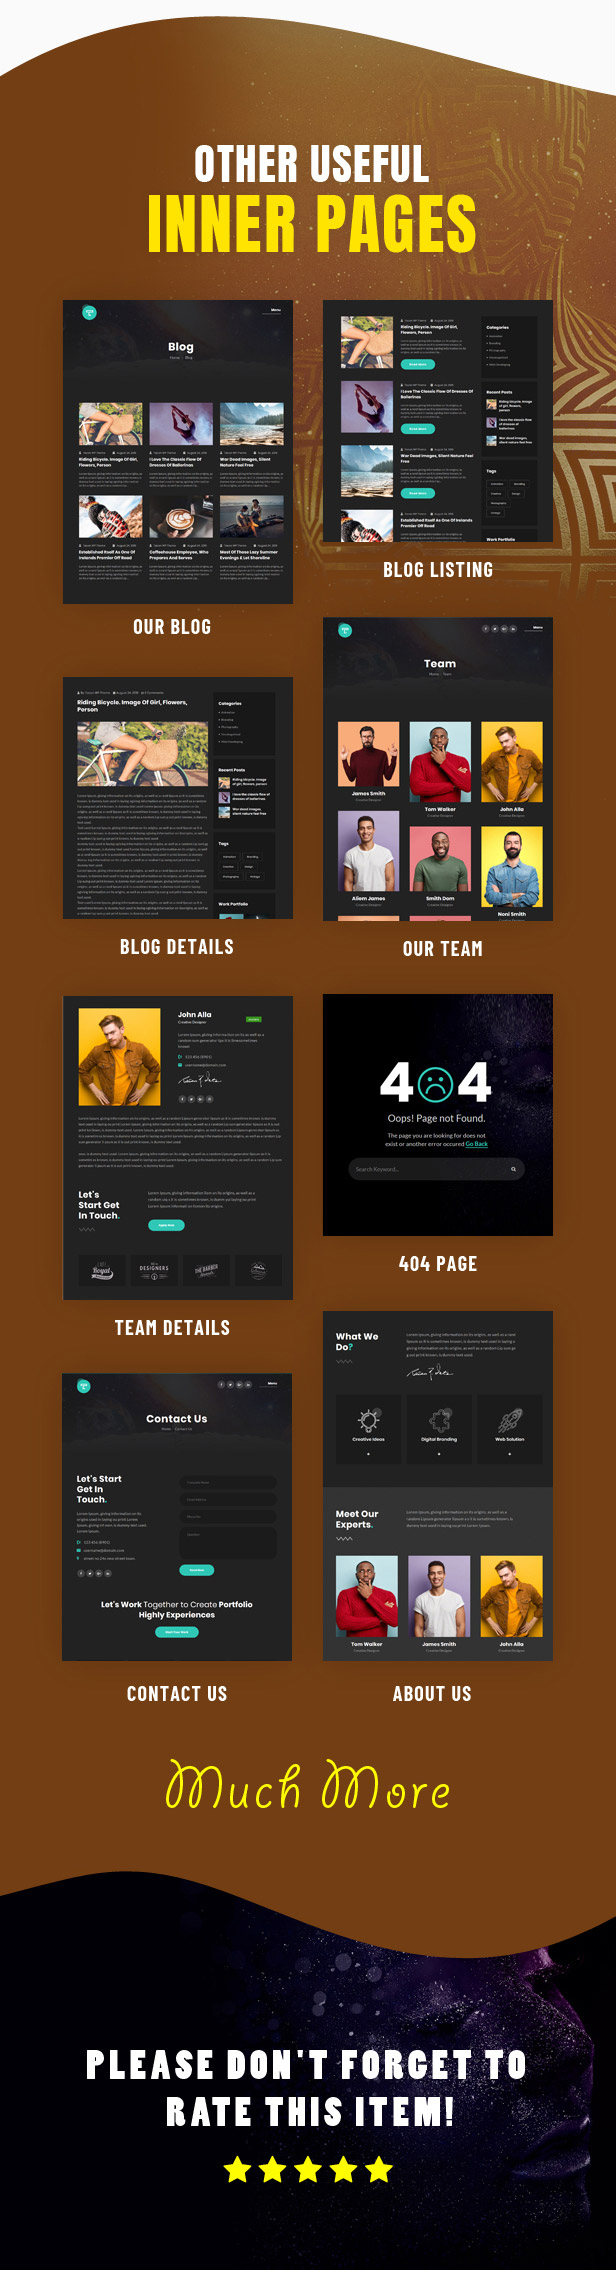 Tacon - A Showcase Portfolio WordPress Theme - 5